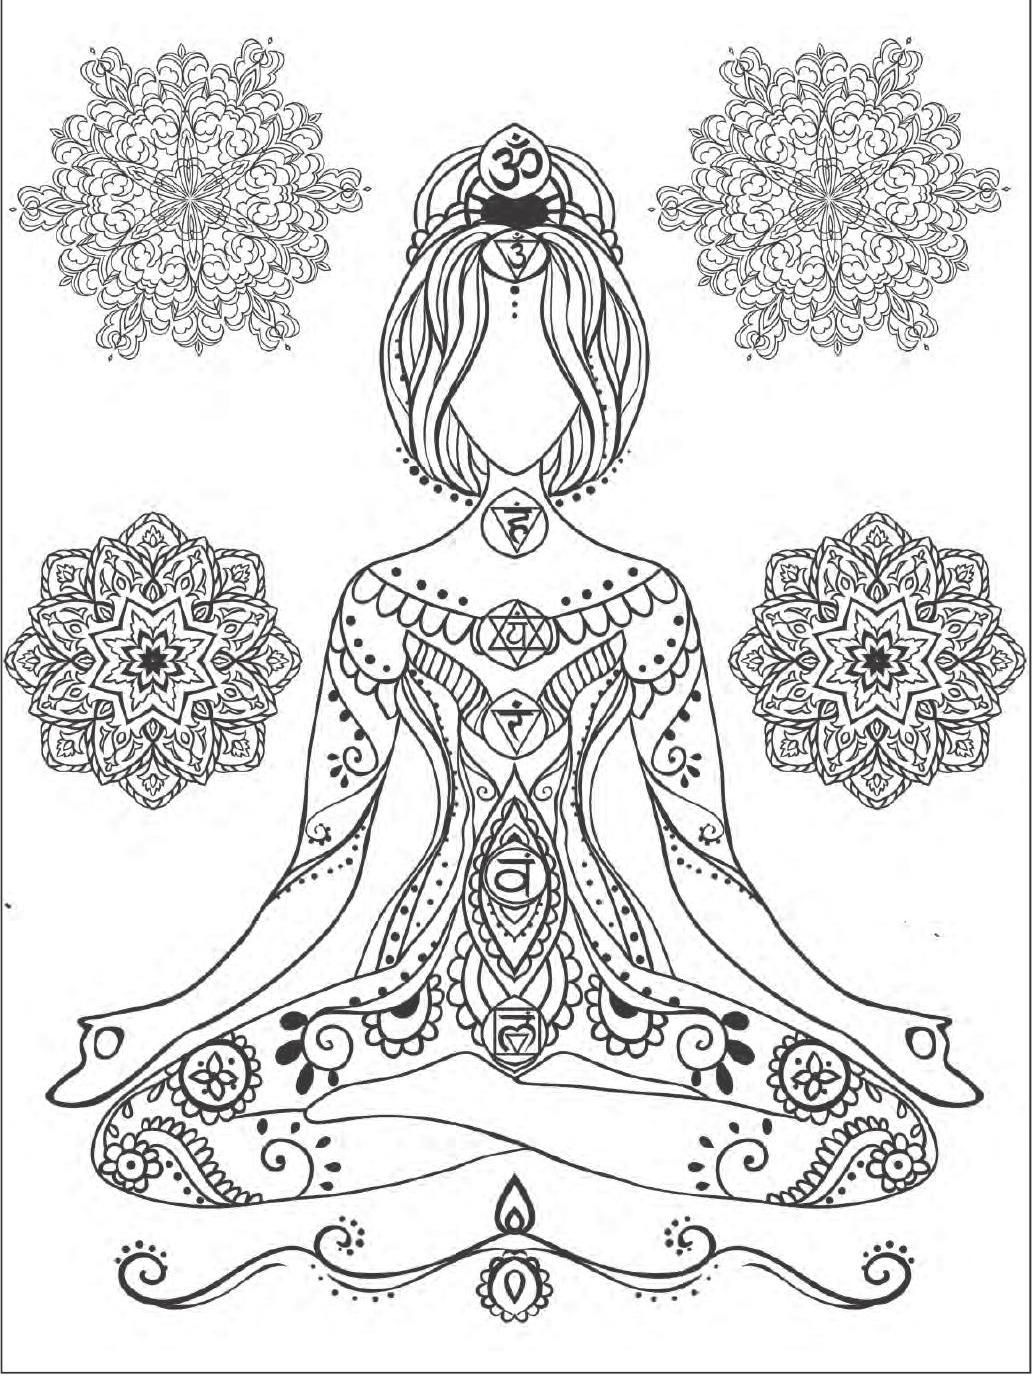 ClippedOnIssuu From Yoga And Meditation Coloring Book For Adults With